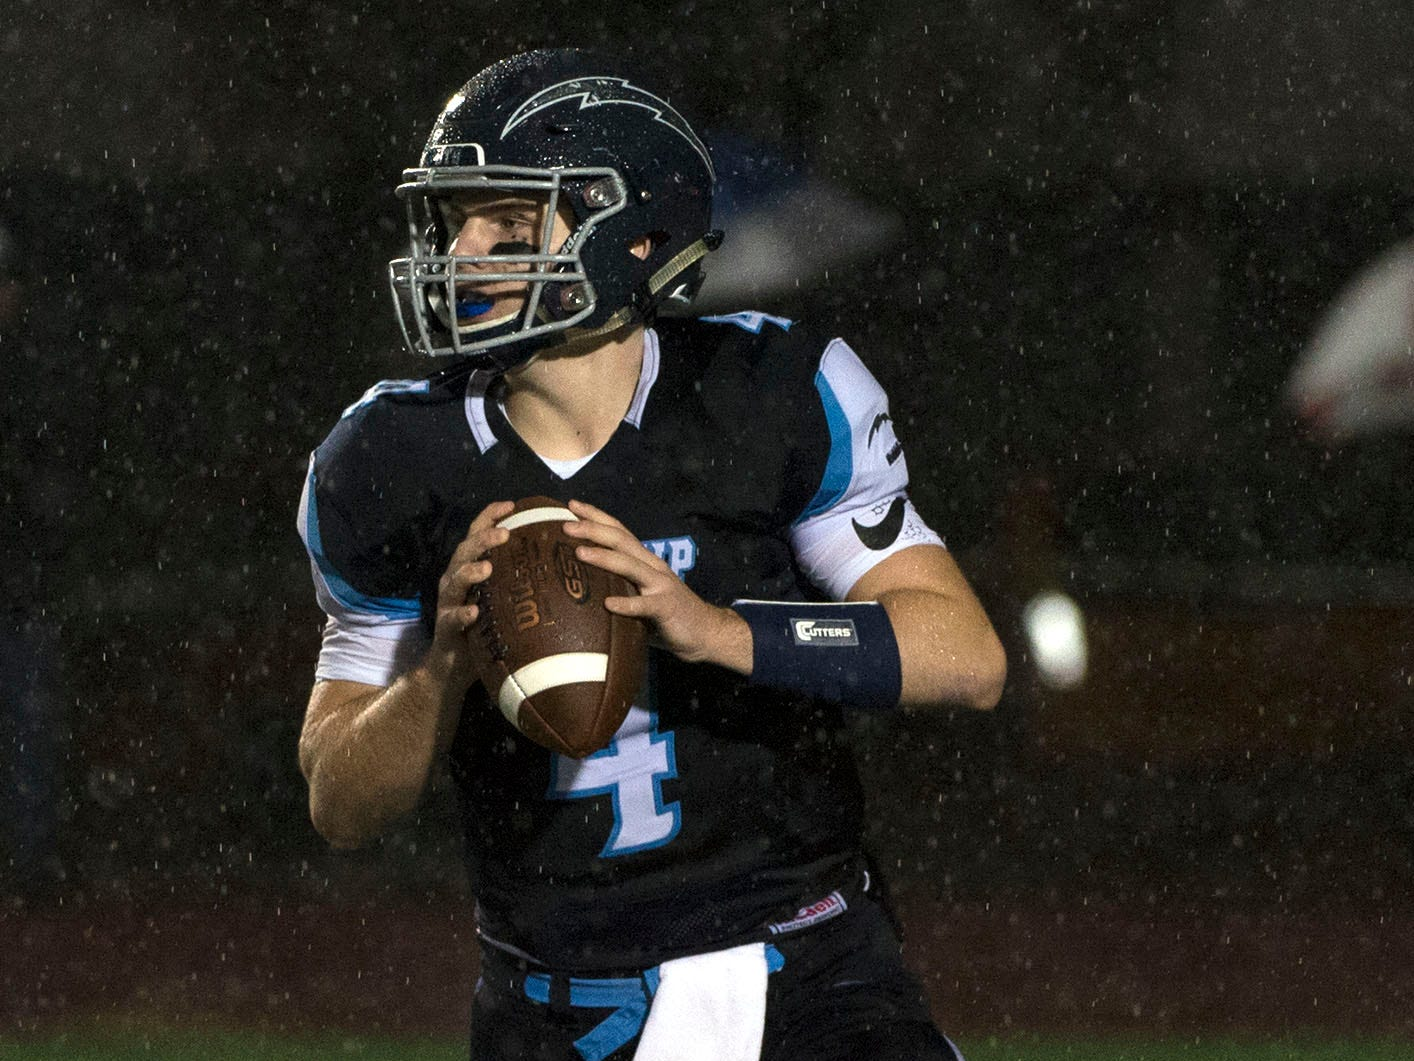 Manheim Township's Harry Kirk scrambles to pass the ball. Chambersburg Trojans dropped a close game 20-17 to Manheim Township Blue Streaks in the rain during PIAA District 3 playoff football on Friday, Nov. 2, 2018.